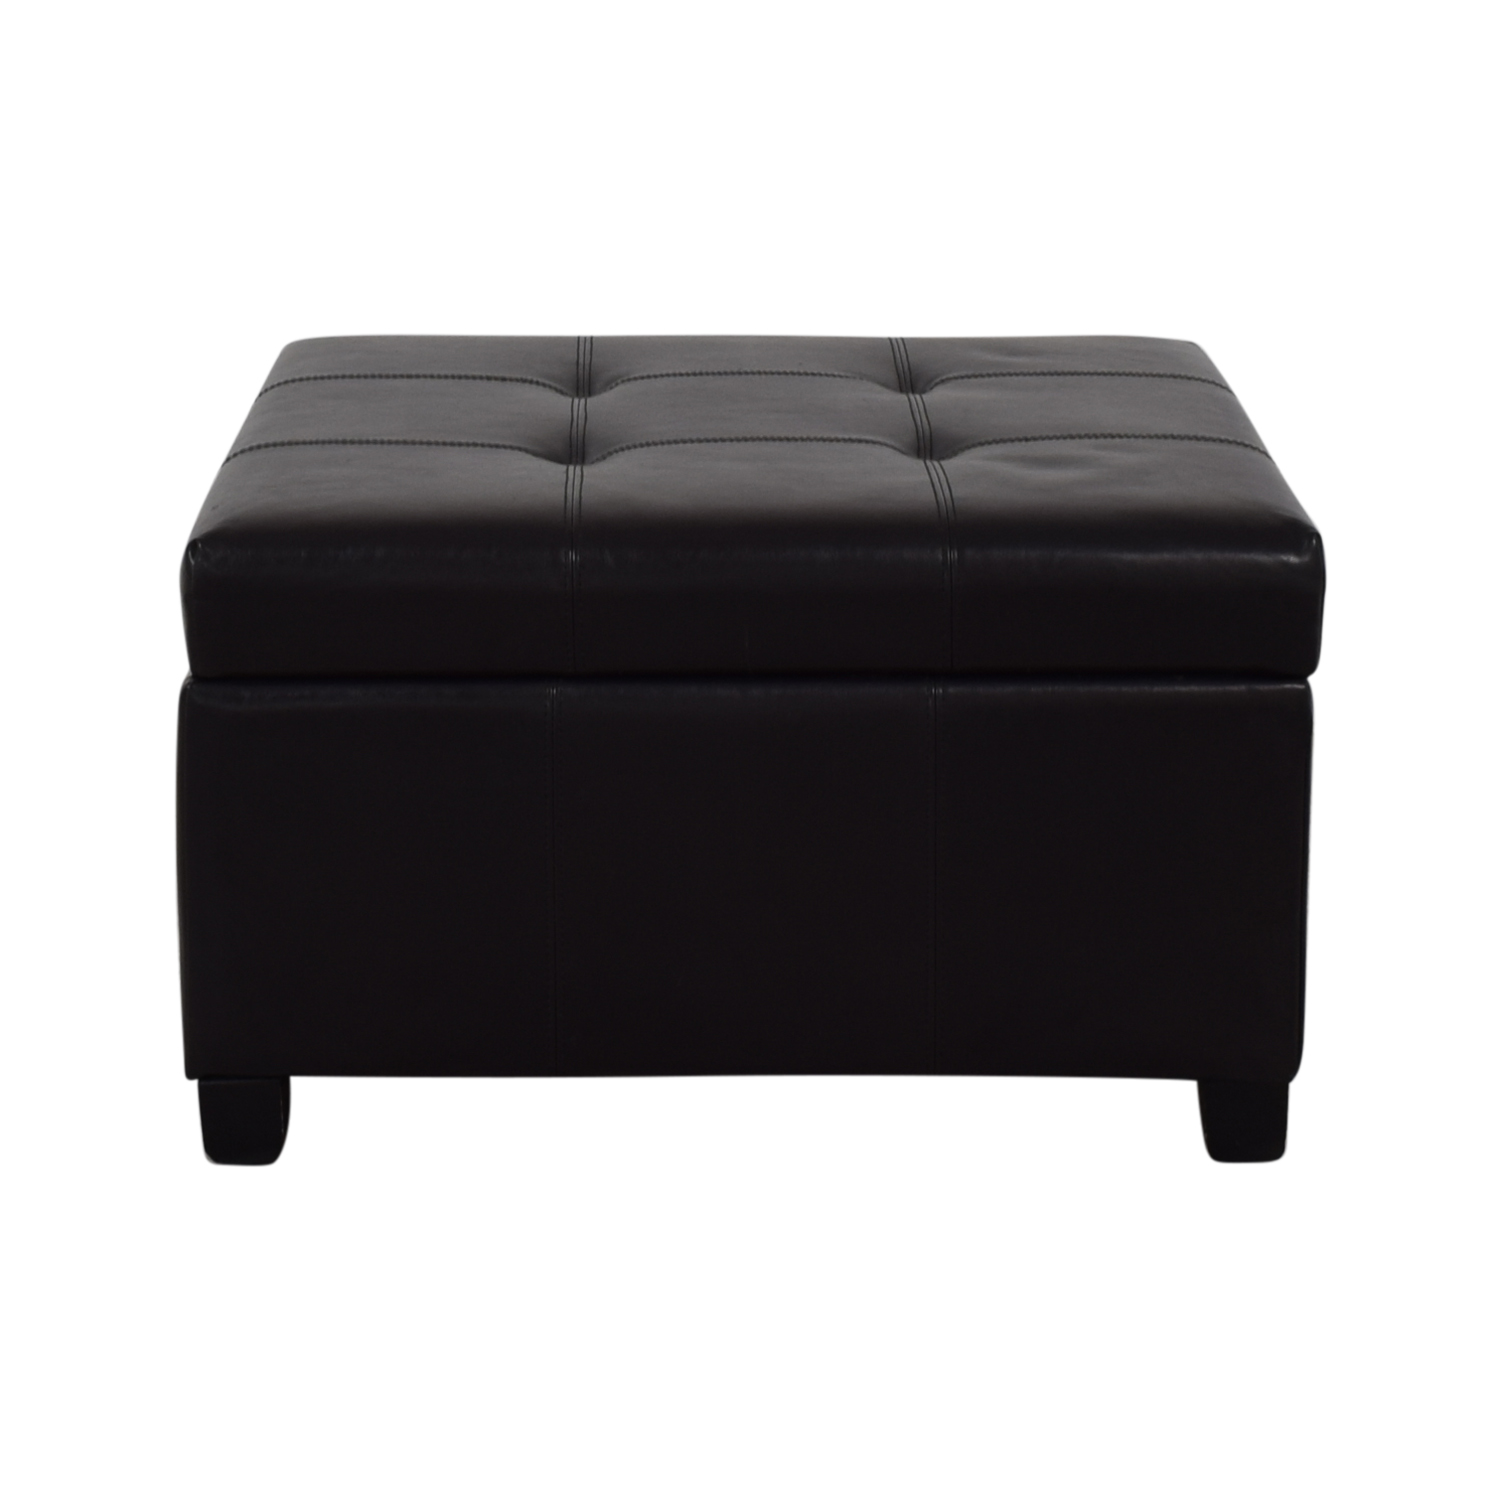 Tufted Storage Ottoman Ottomans